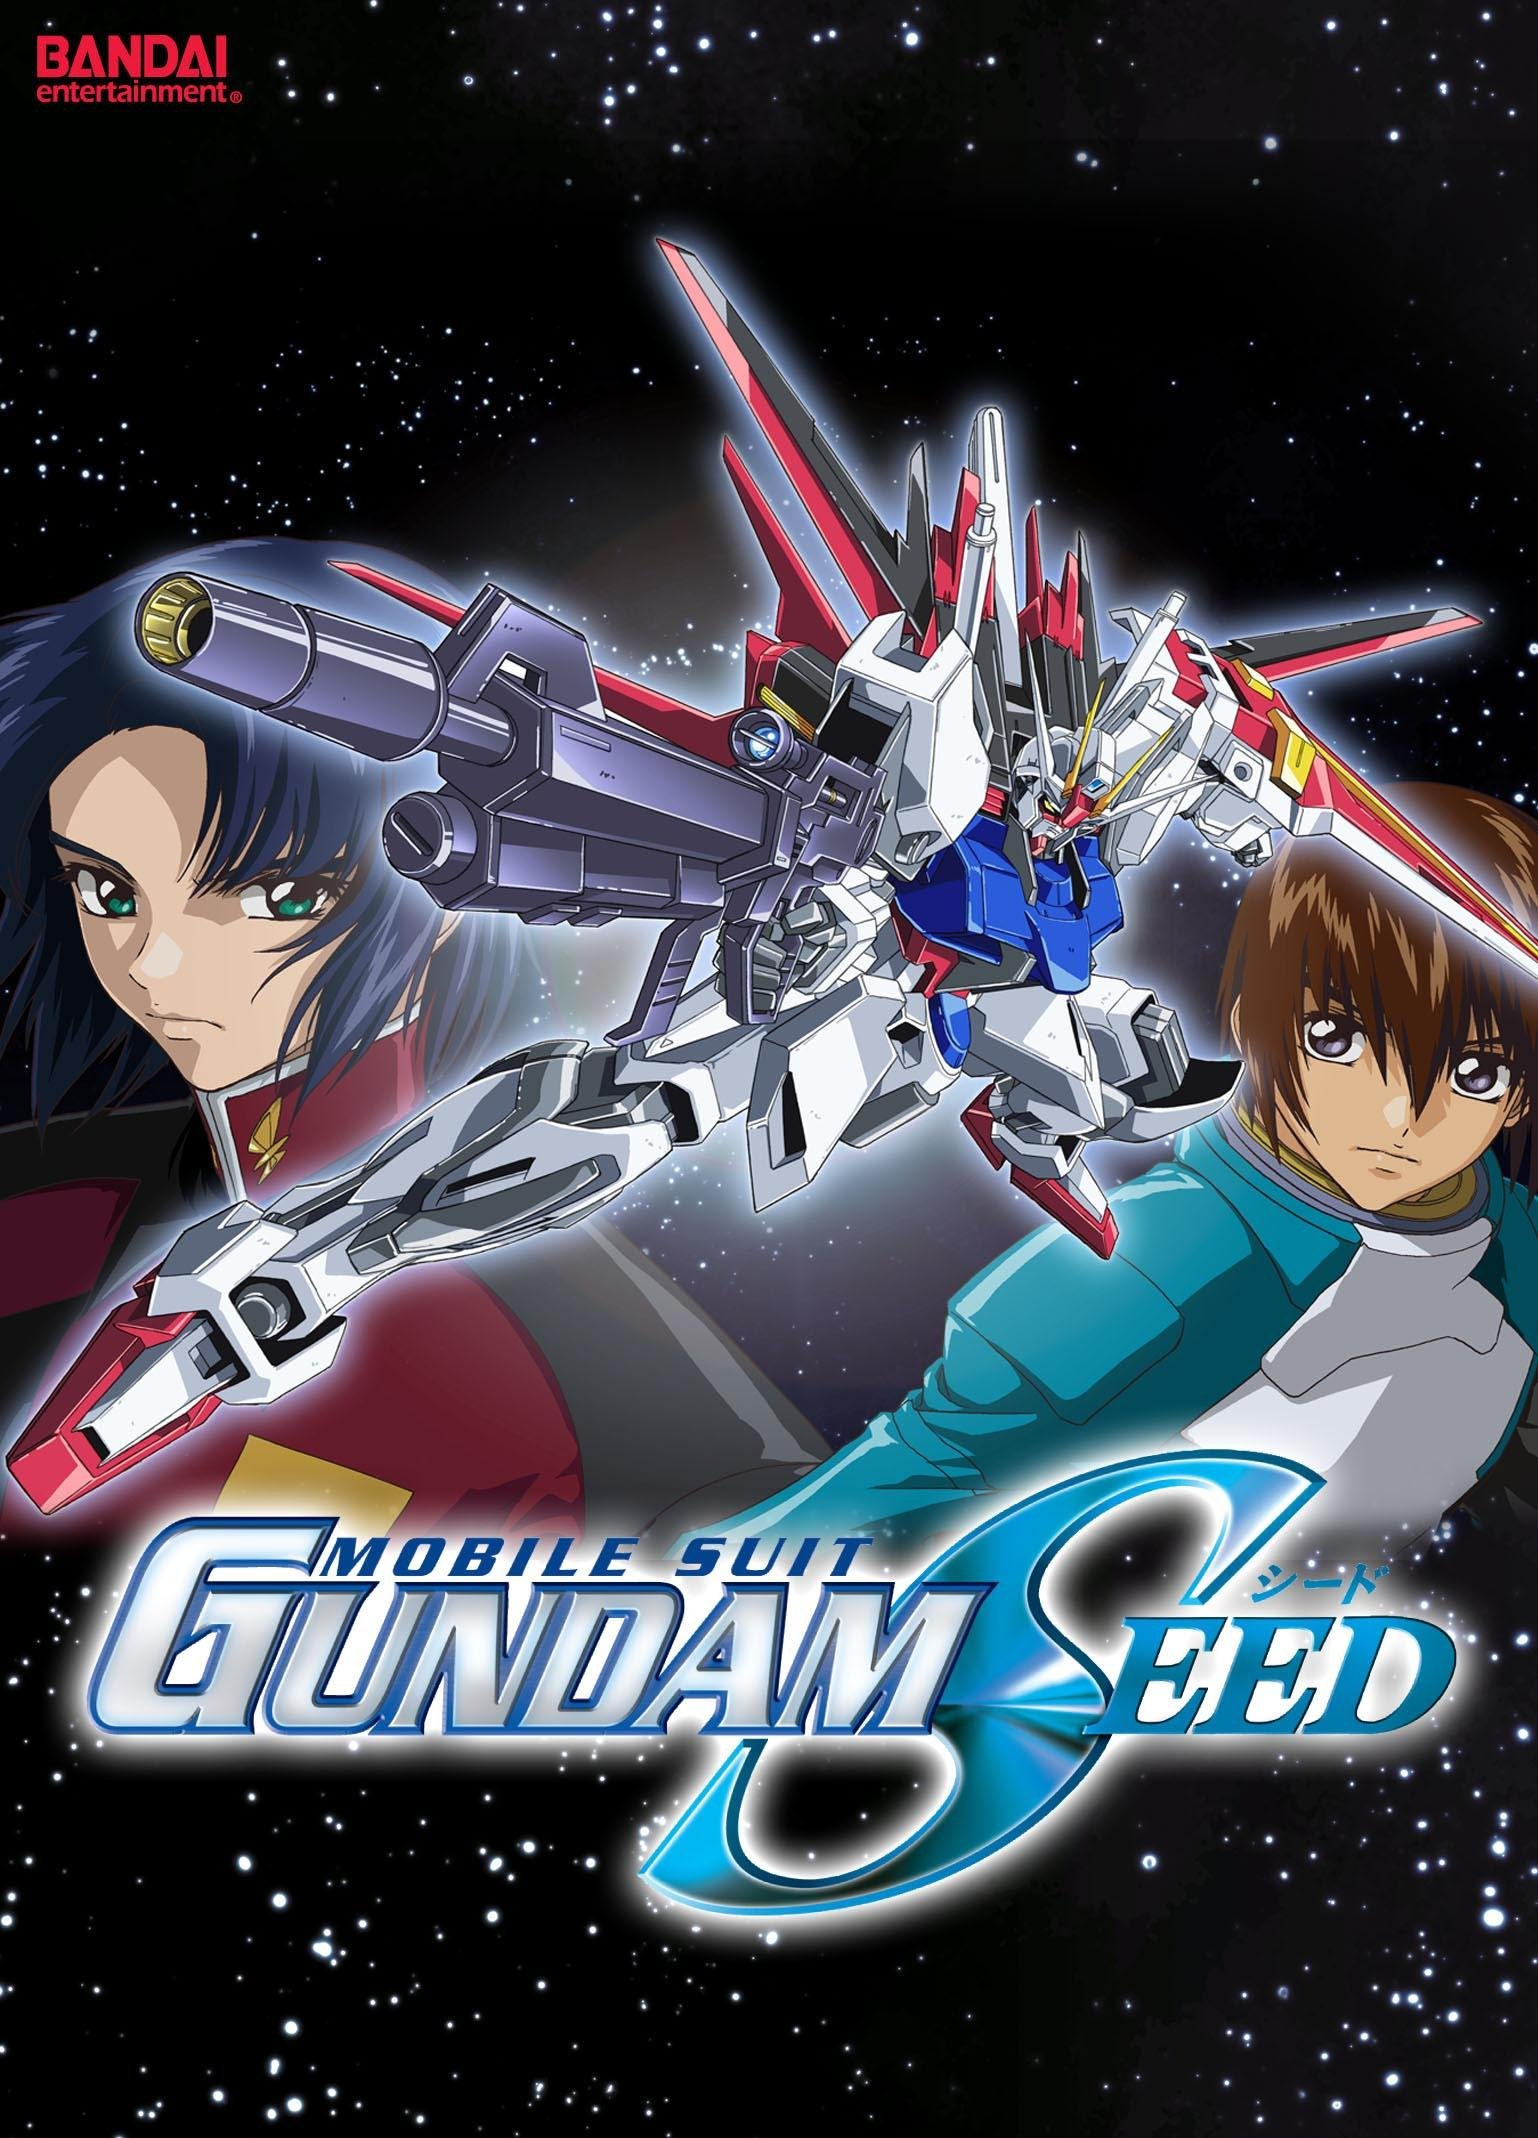 Watch Mobile Suit Gundam SEED   Prime Video